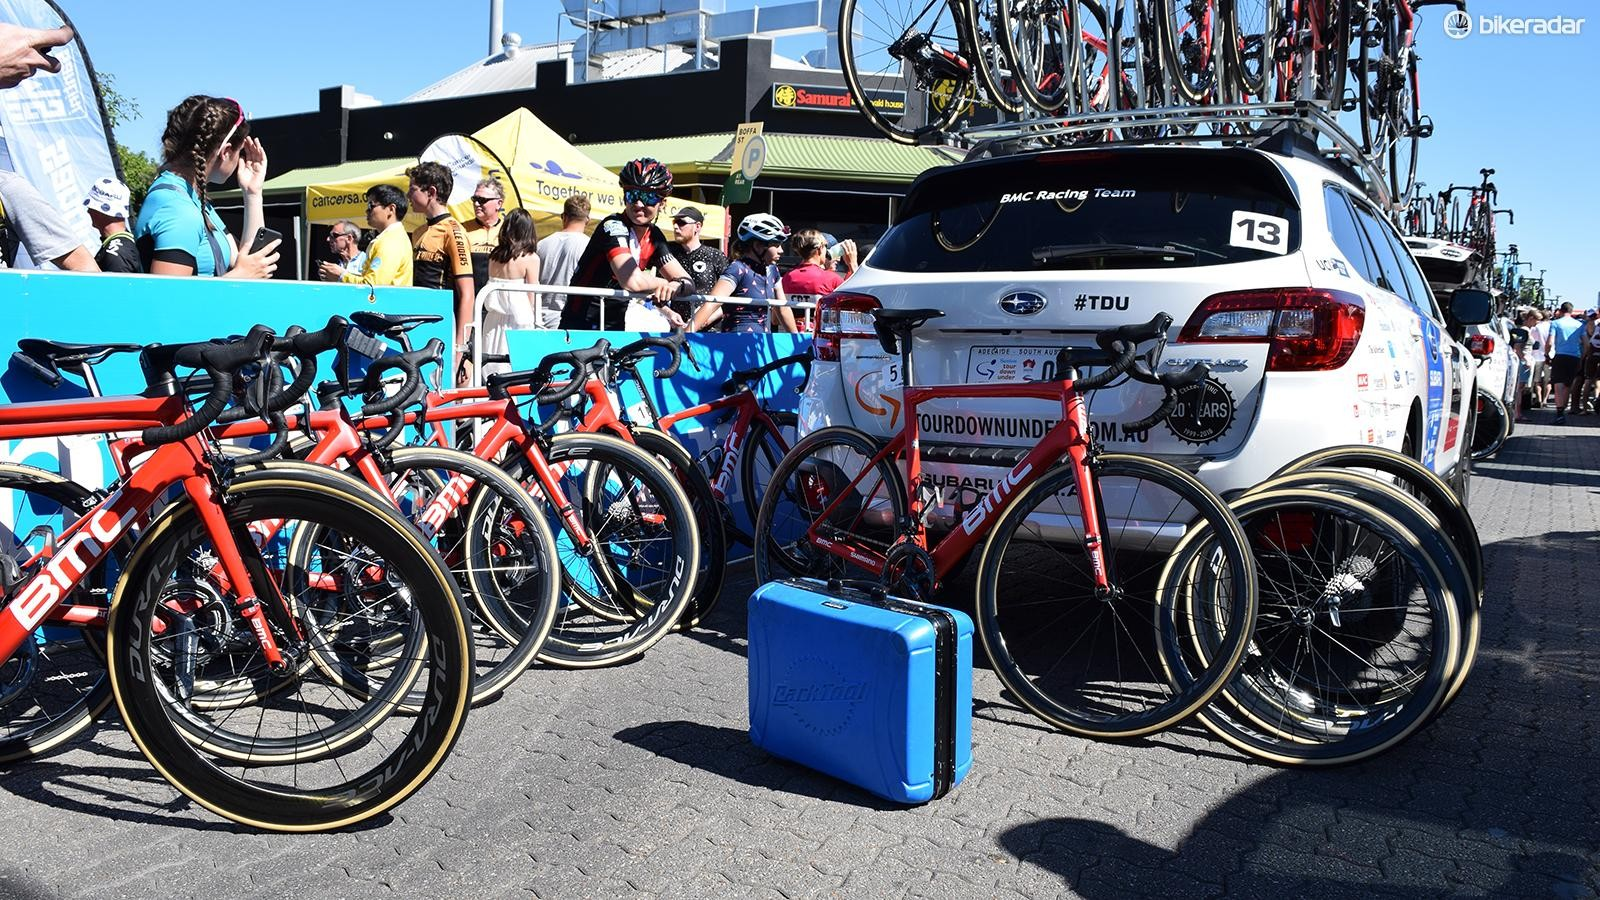 BMC Racing prepare their team bikes ahead of the race